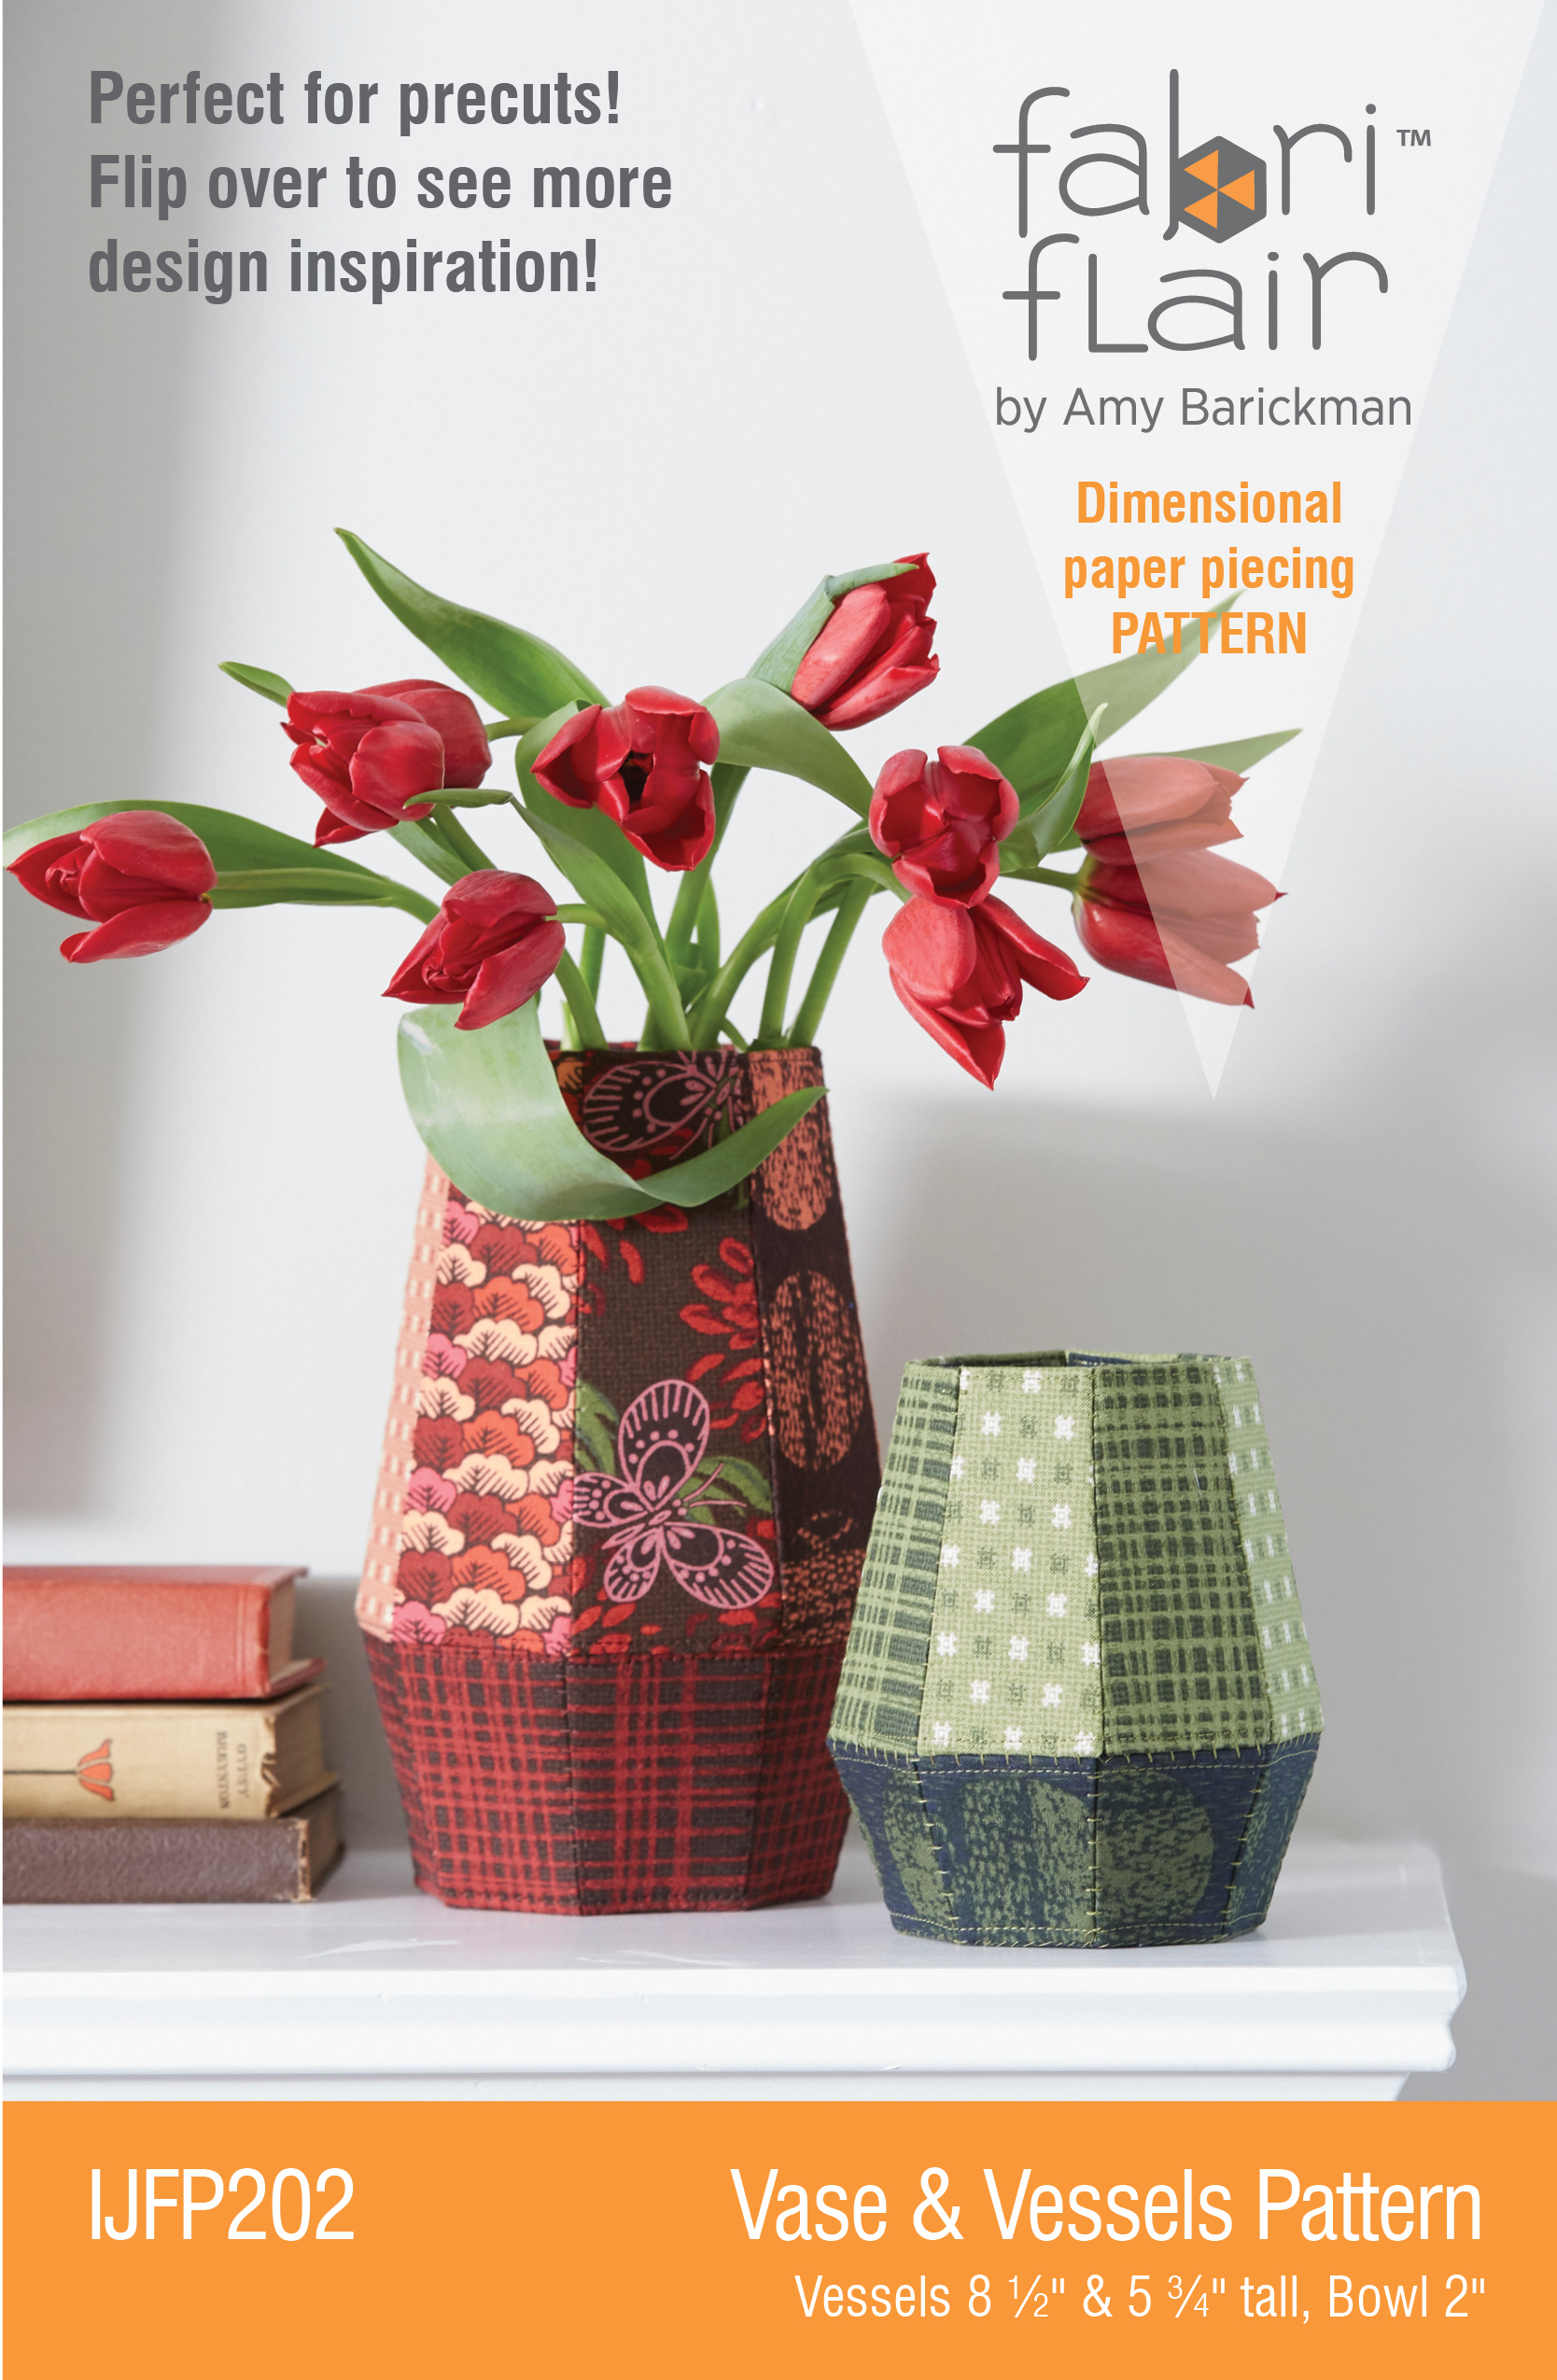 Fabriflair™ Vase & Vessels Fabriflair Digital PDF Pattern — dimensional paper piecing project instructions